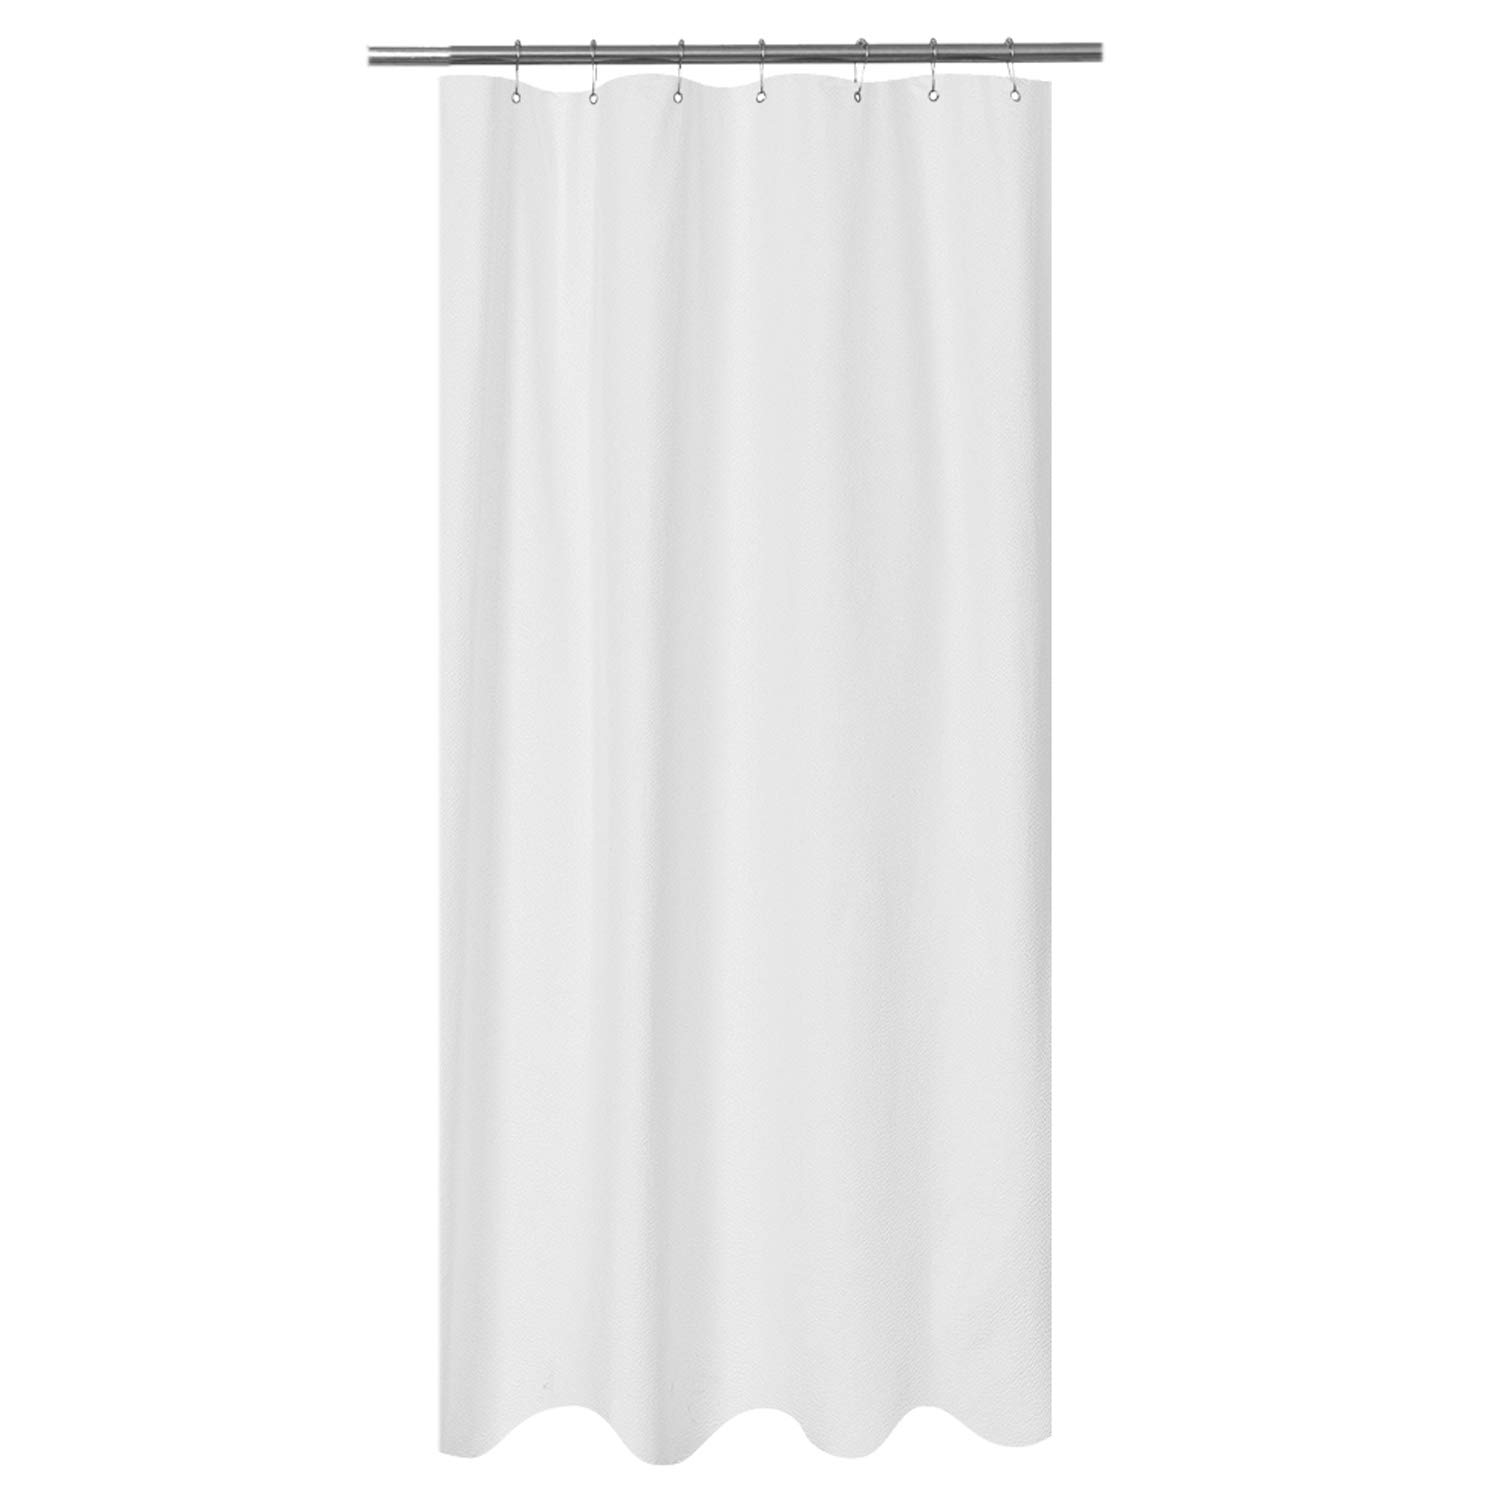 Amazon Mrs Awesome Embossed Microfiber Fabric Stall Shower Curtain Liner 36 X 72 Inch